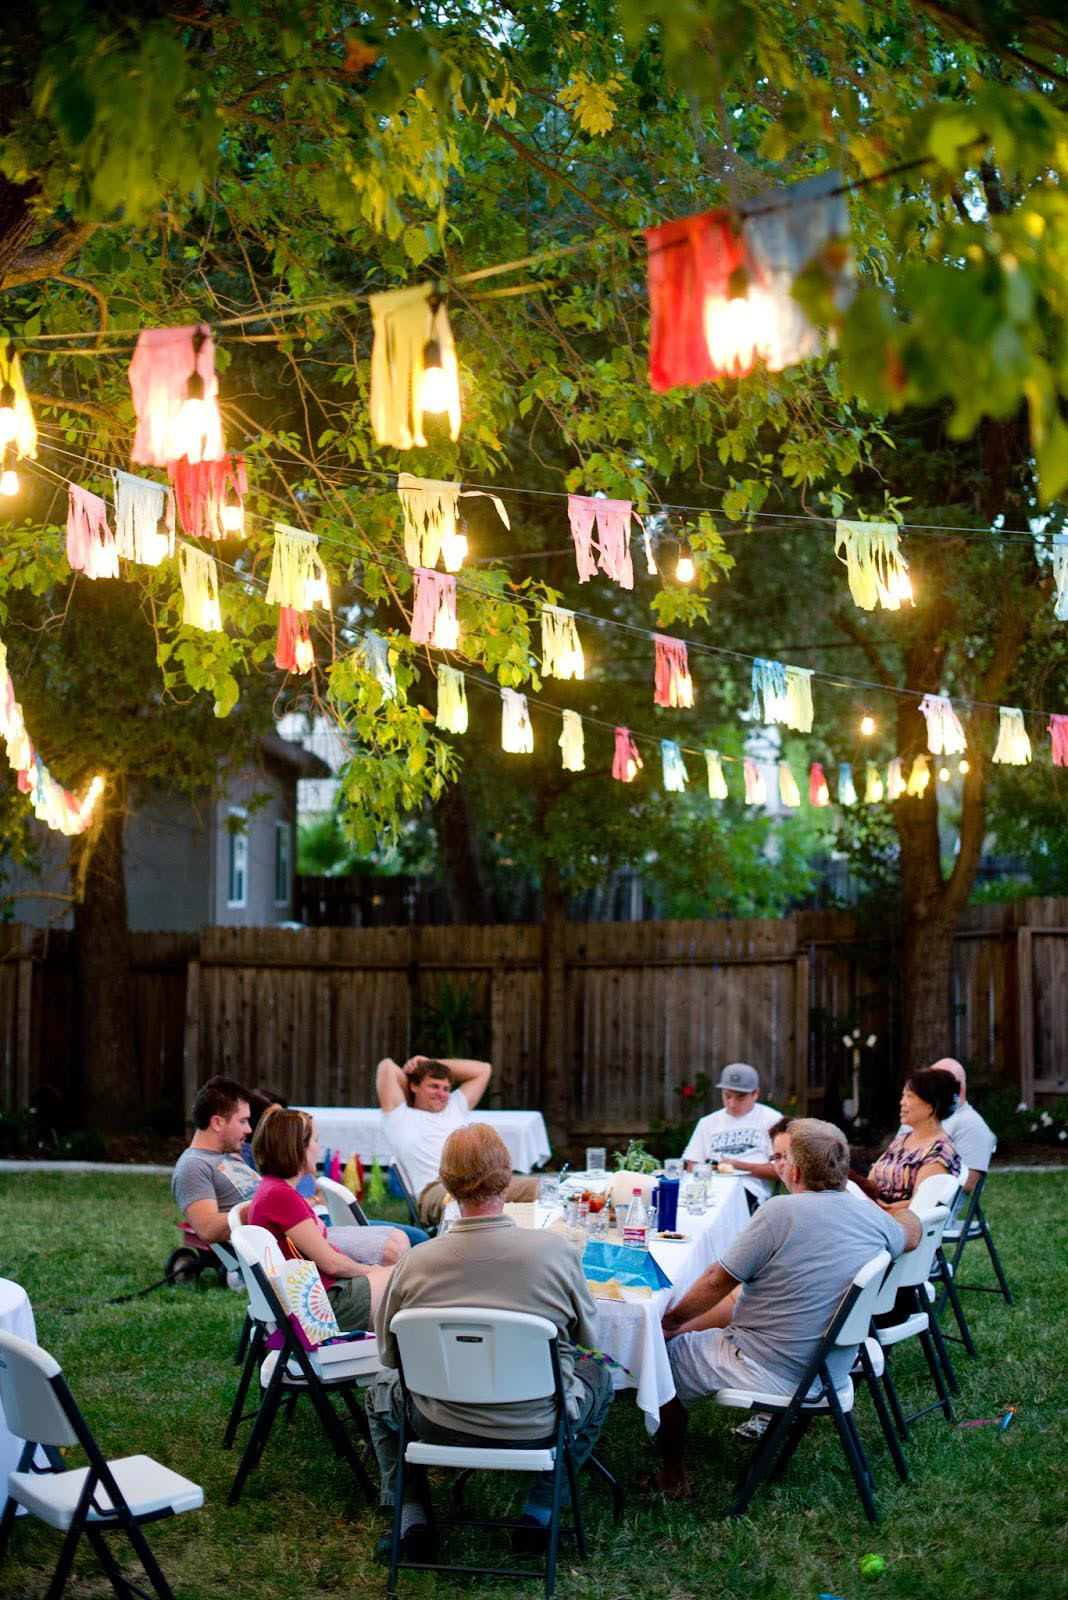 Some creative outdoor party games home party ideas for Adult birthday decoration